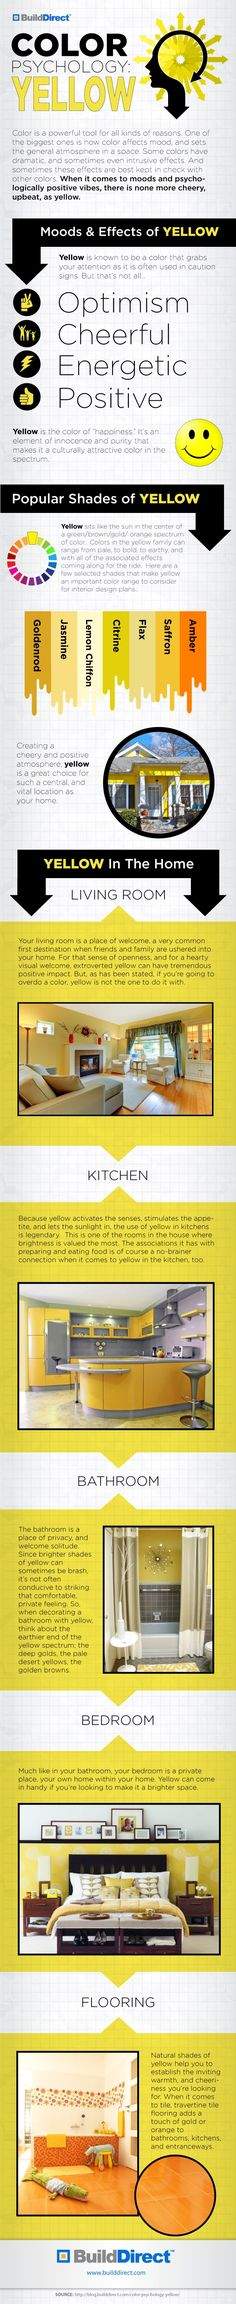 color psychology yellow copy 1 emotional interior design using yellow - Bedroom Color Psychology